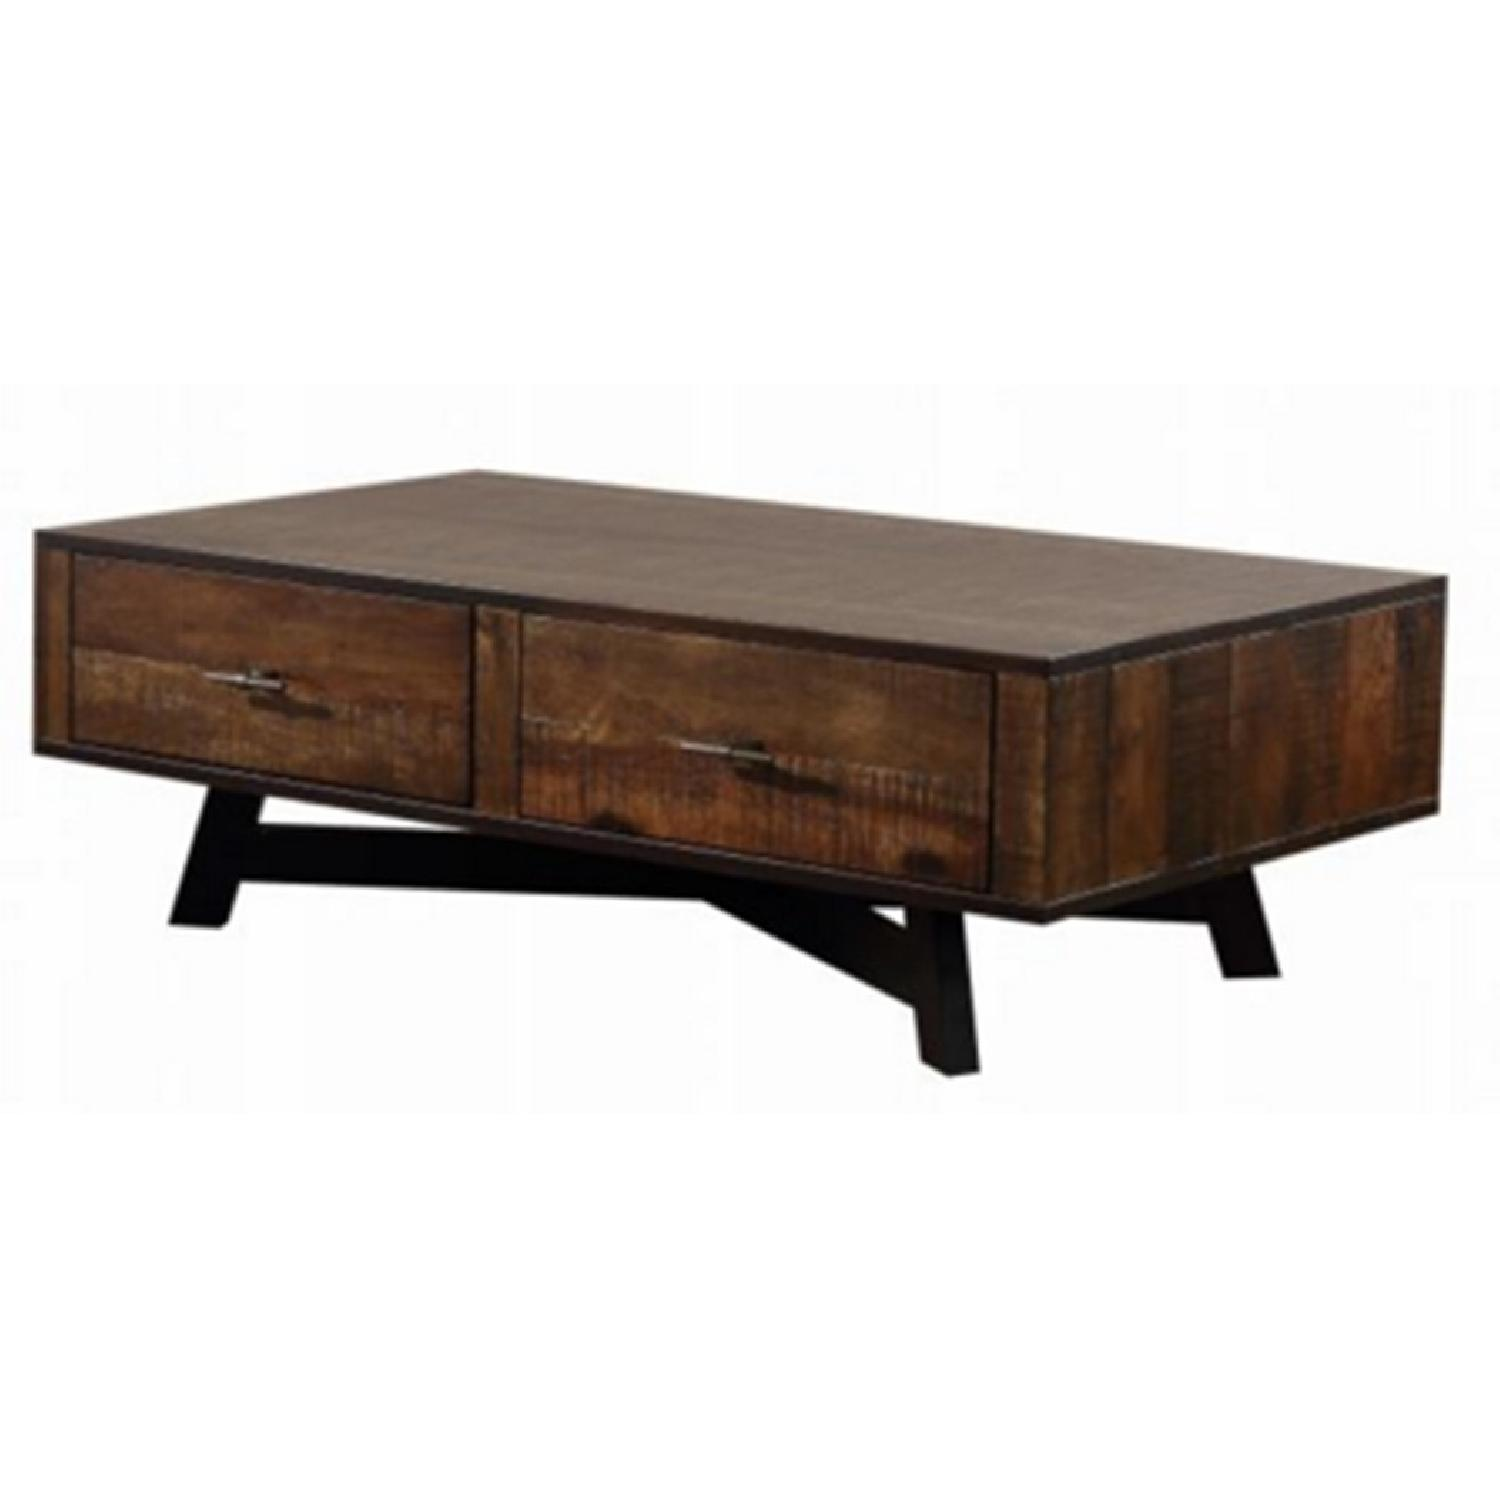 Cb2 Mid Century Coffee Table: Mid Century Style Coffee Table In Tobacco Finish